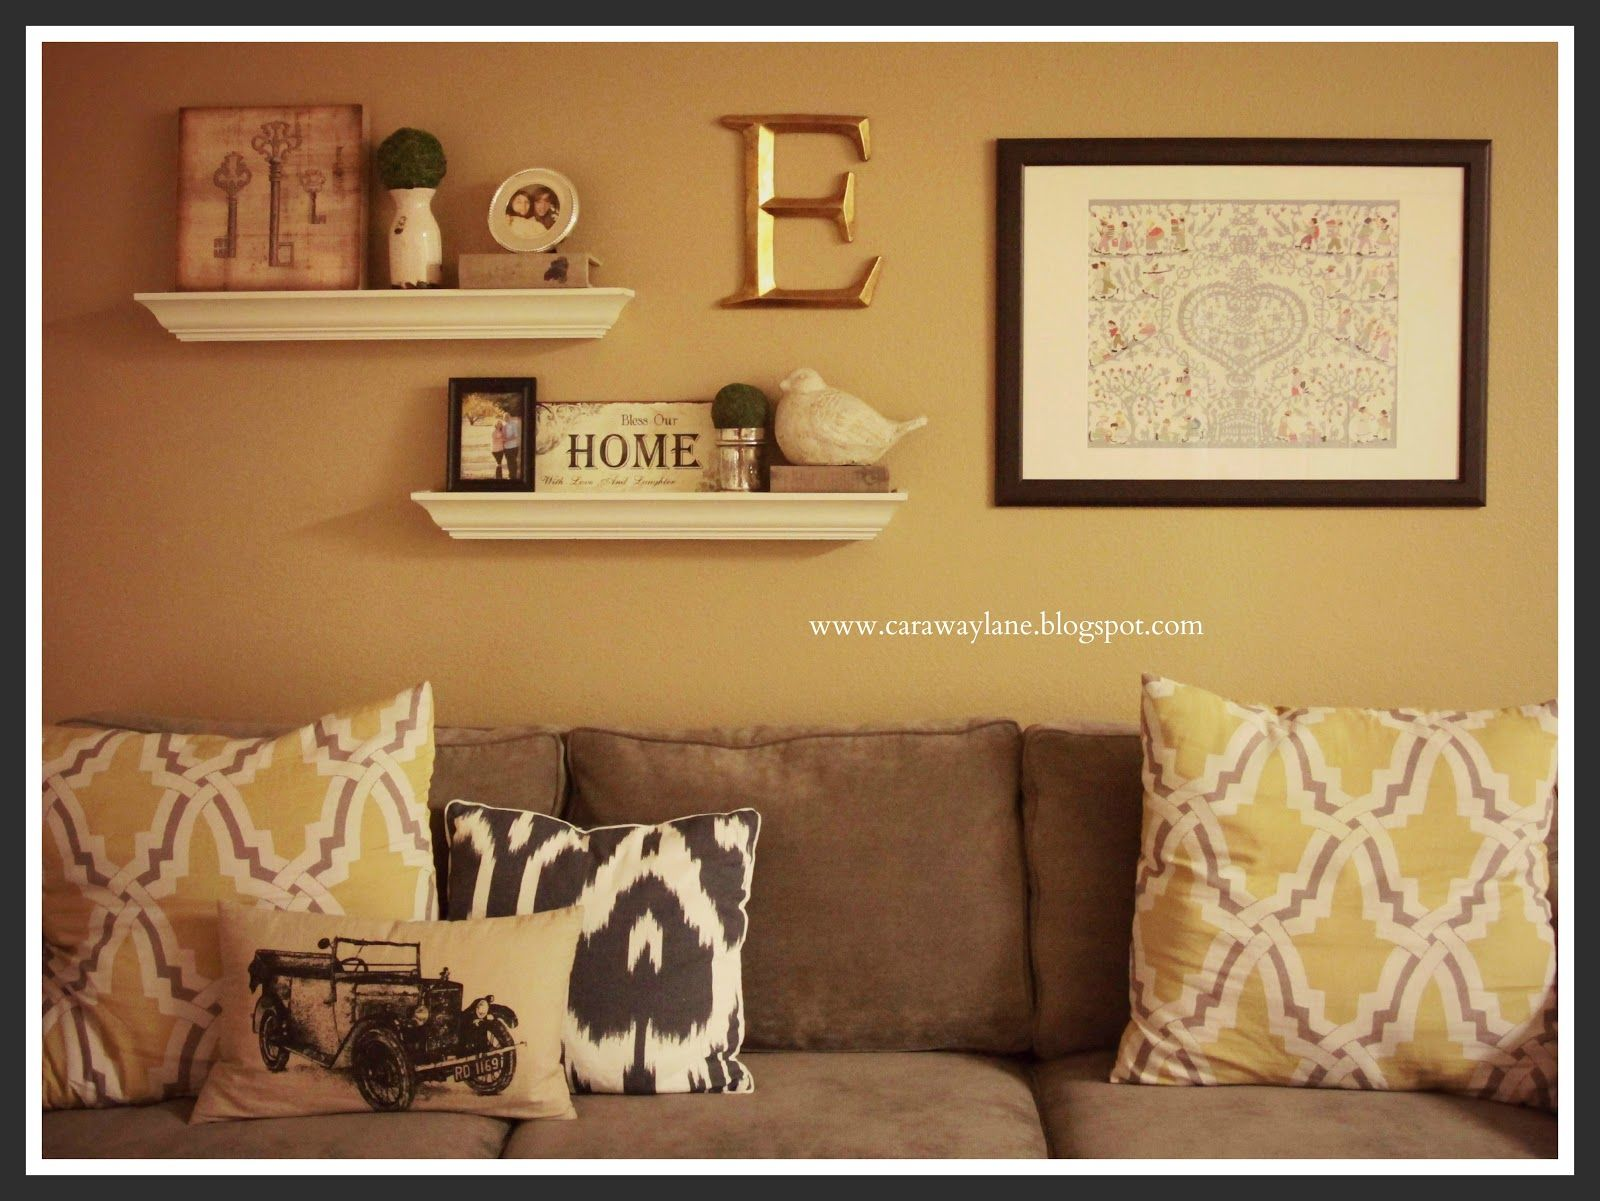 Decorate over a sofa above the couch wall decor future for Wall accessories for living room